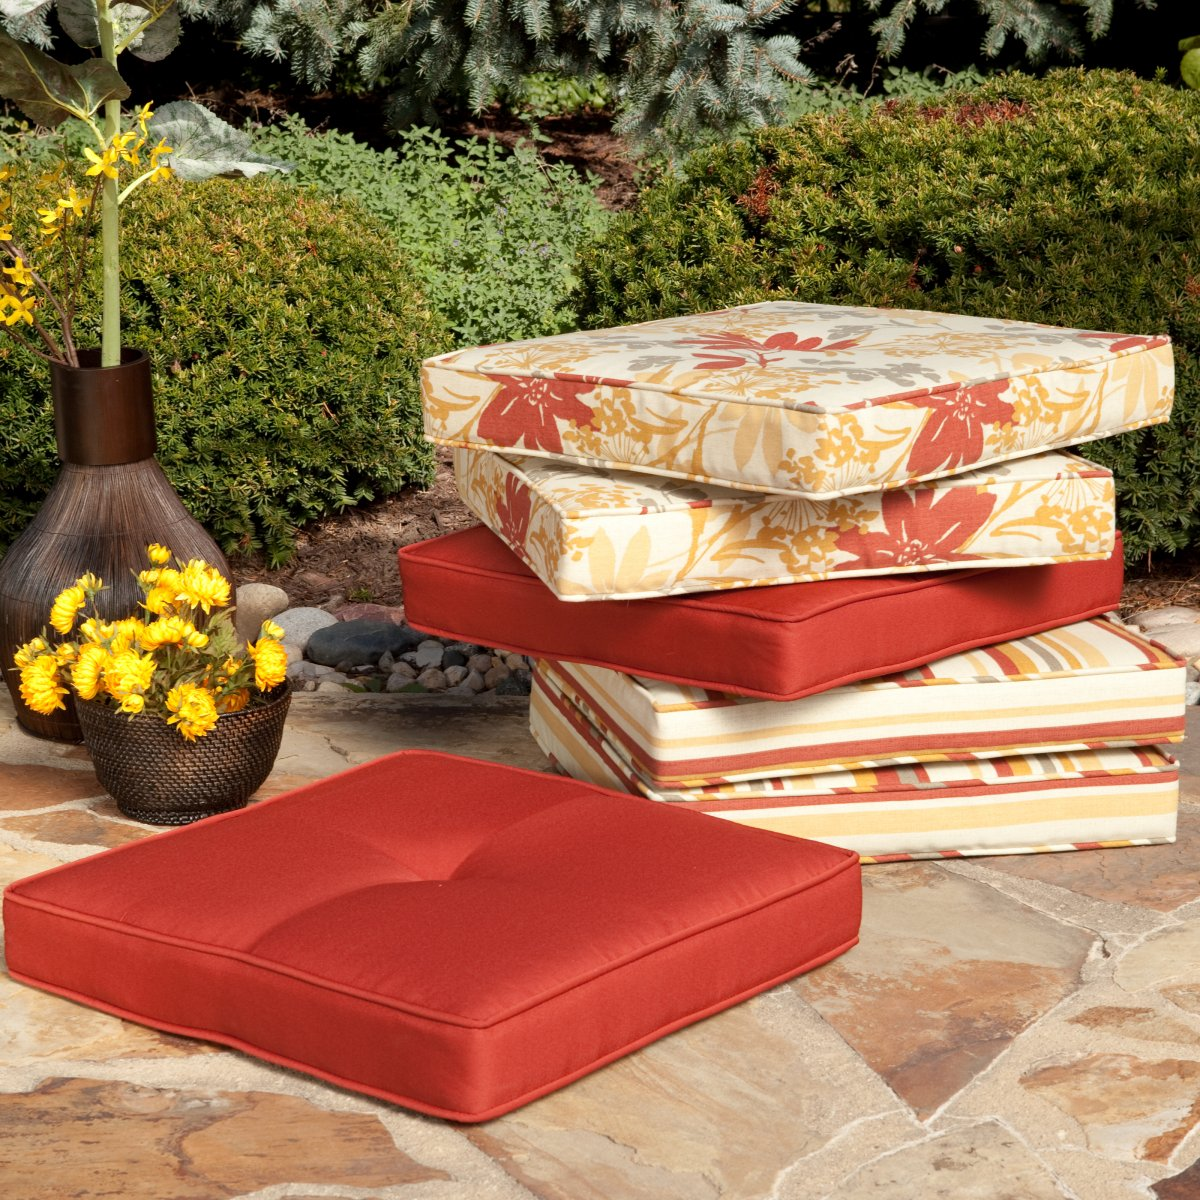 Colorful Tropical Target Outdoor Cushions Idea In Red And Cream Color With  Pattern On Concrete Patio